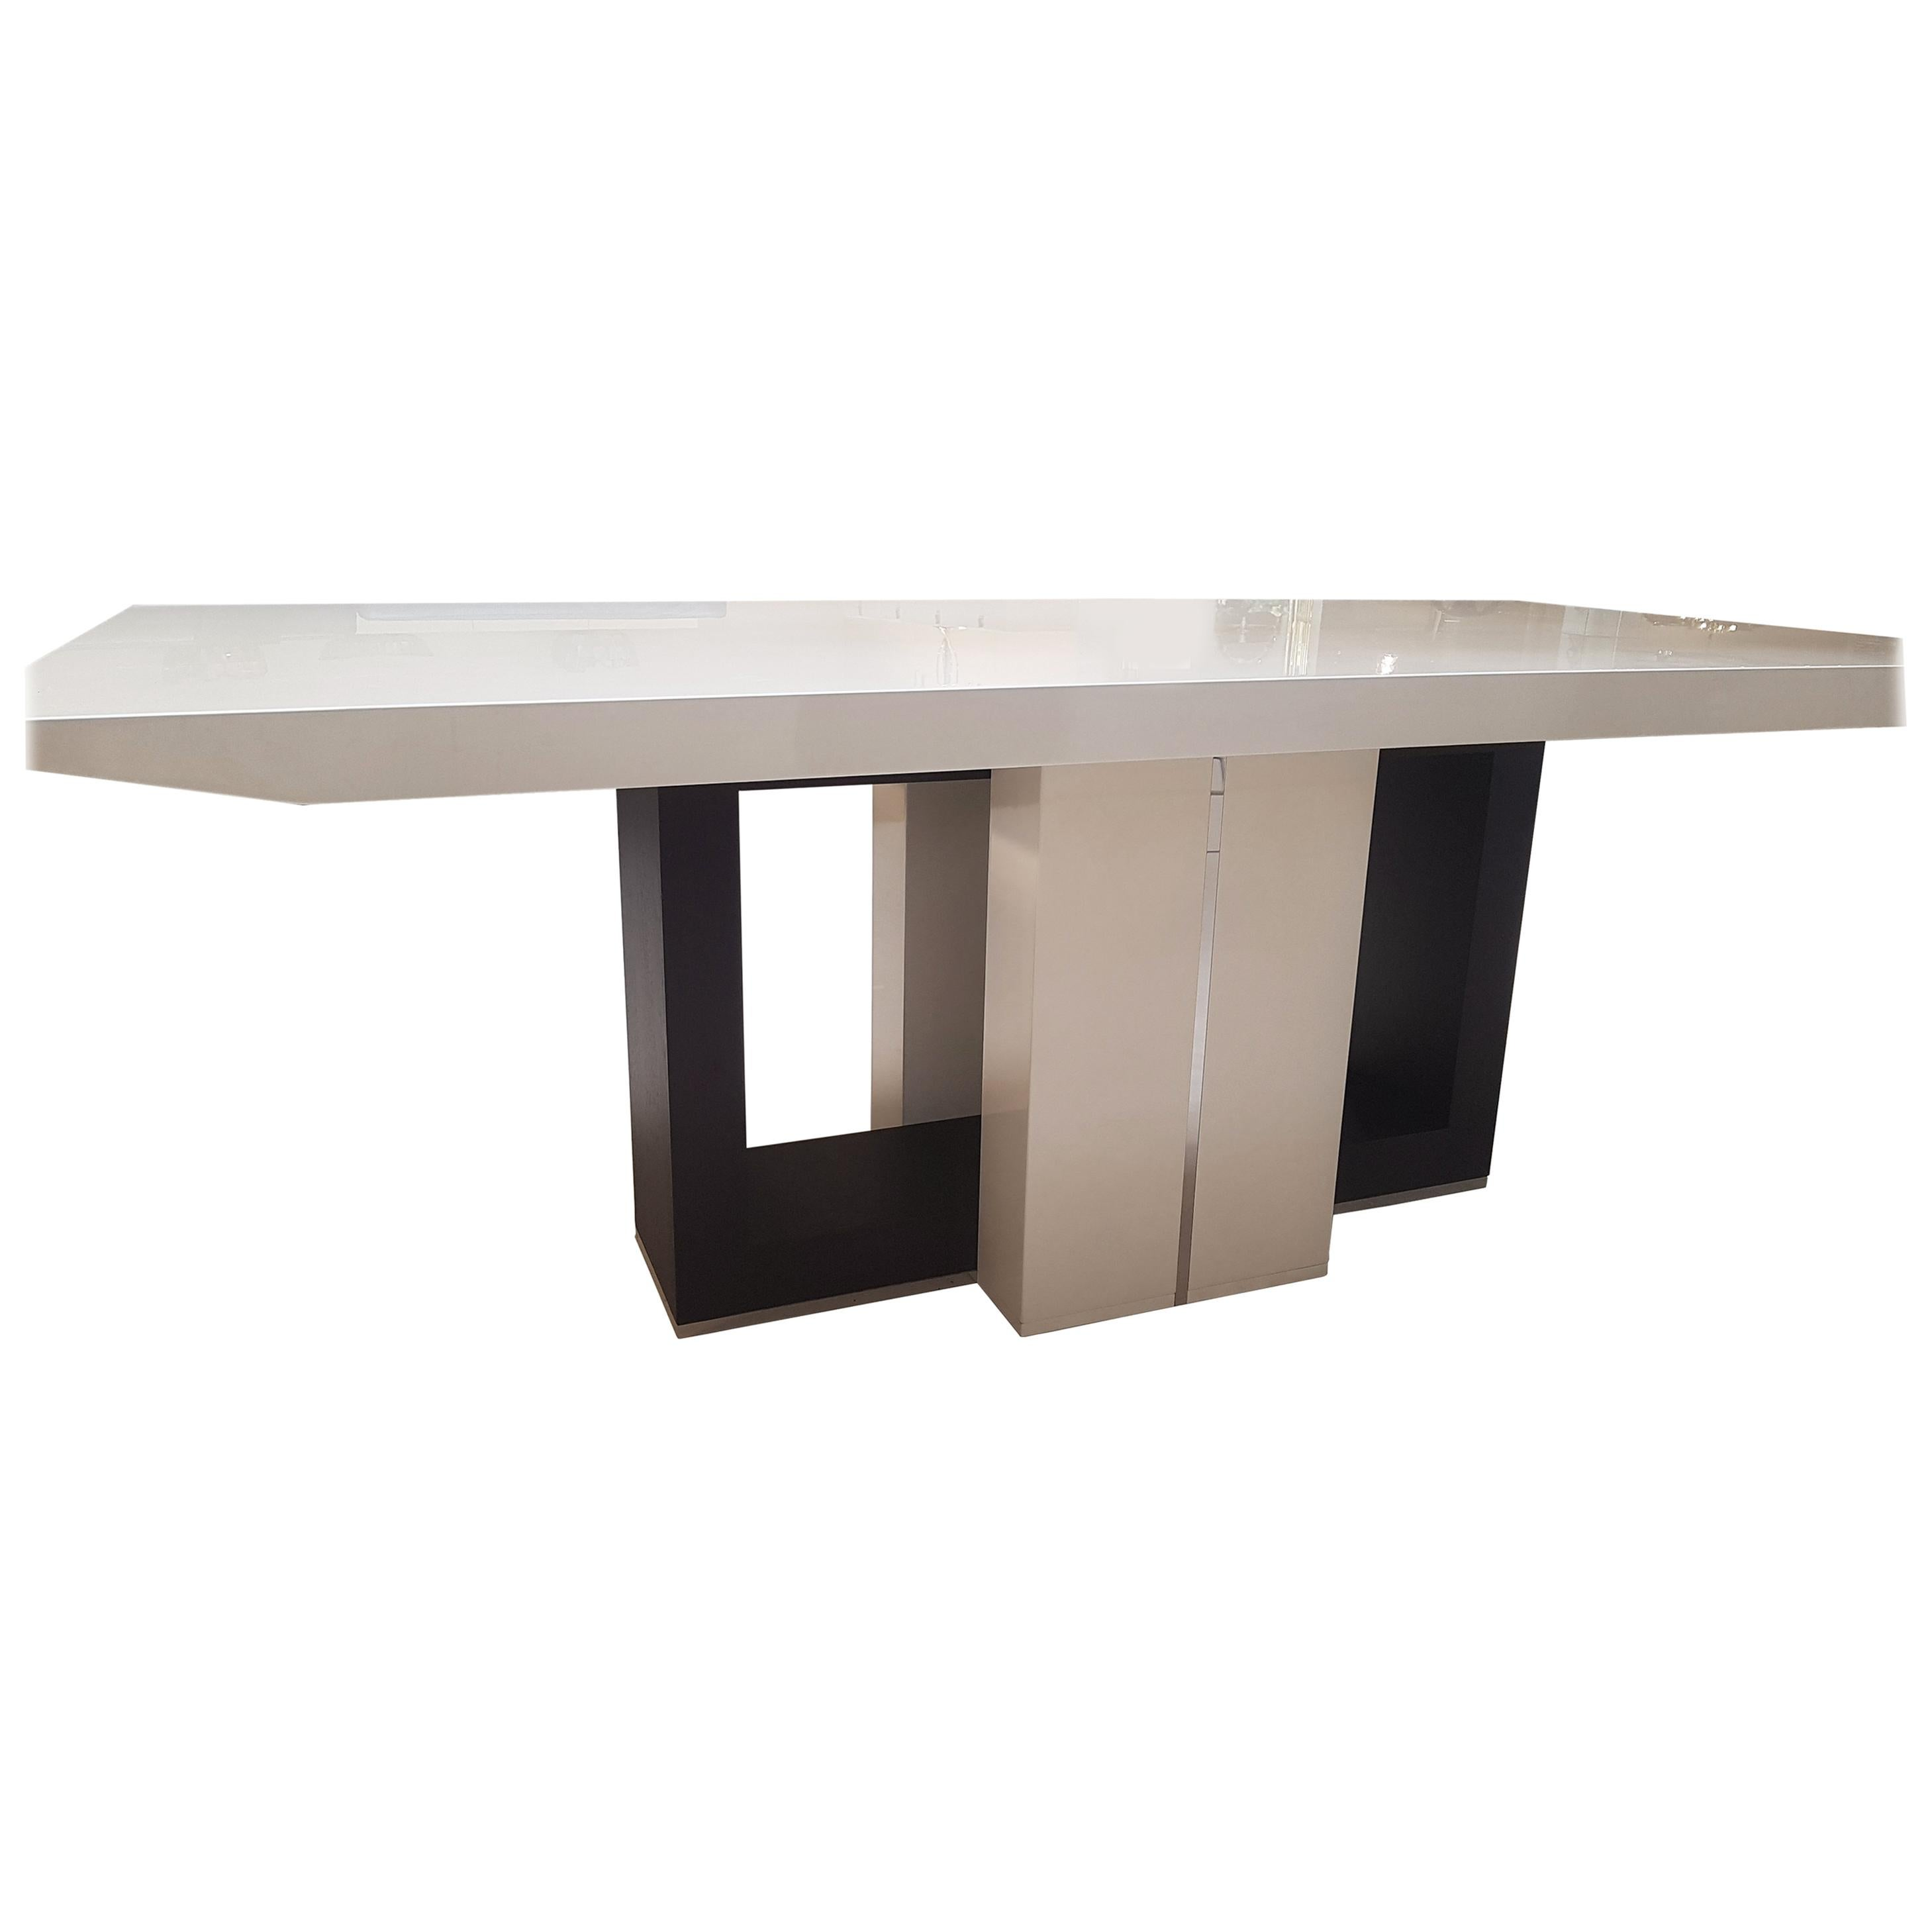 Delicieux Black And White High Gloss Dining Table For Sale